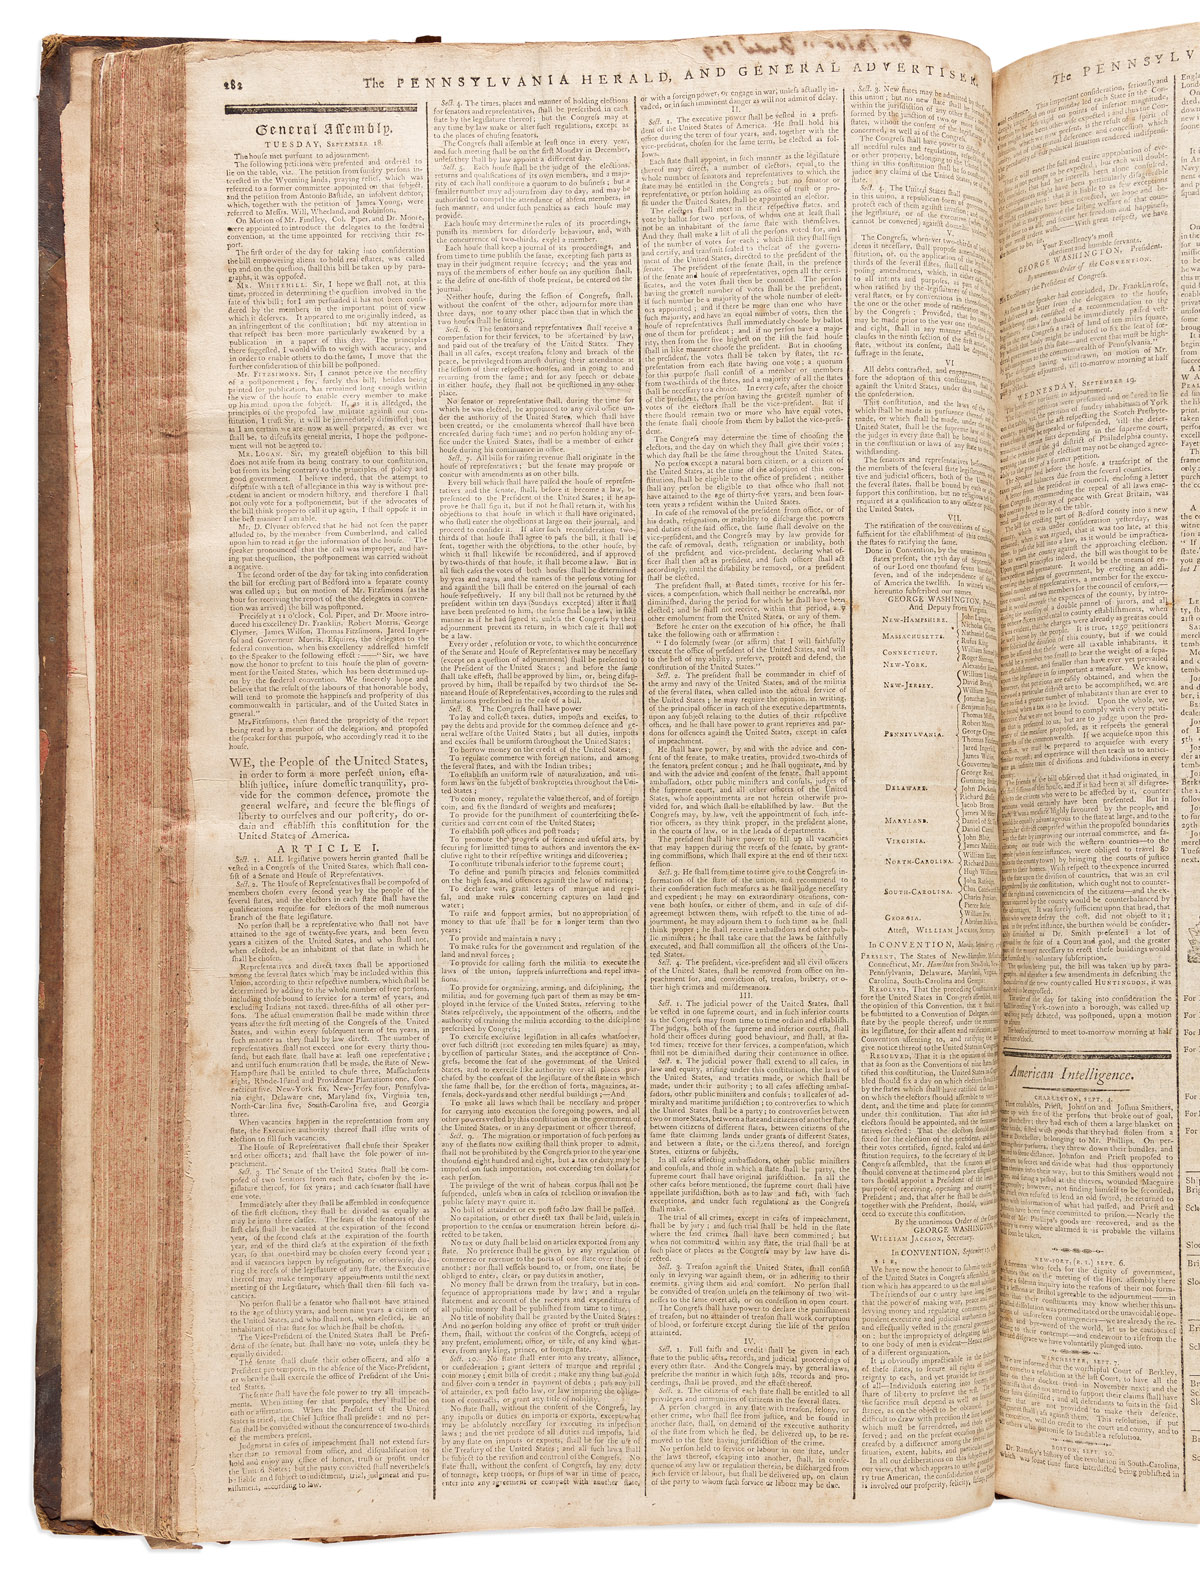 (CONSTITUTION.) Bound volume of the Pennsylvania Herald, featuring a very early printing of the United States Constitution and more.